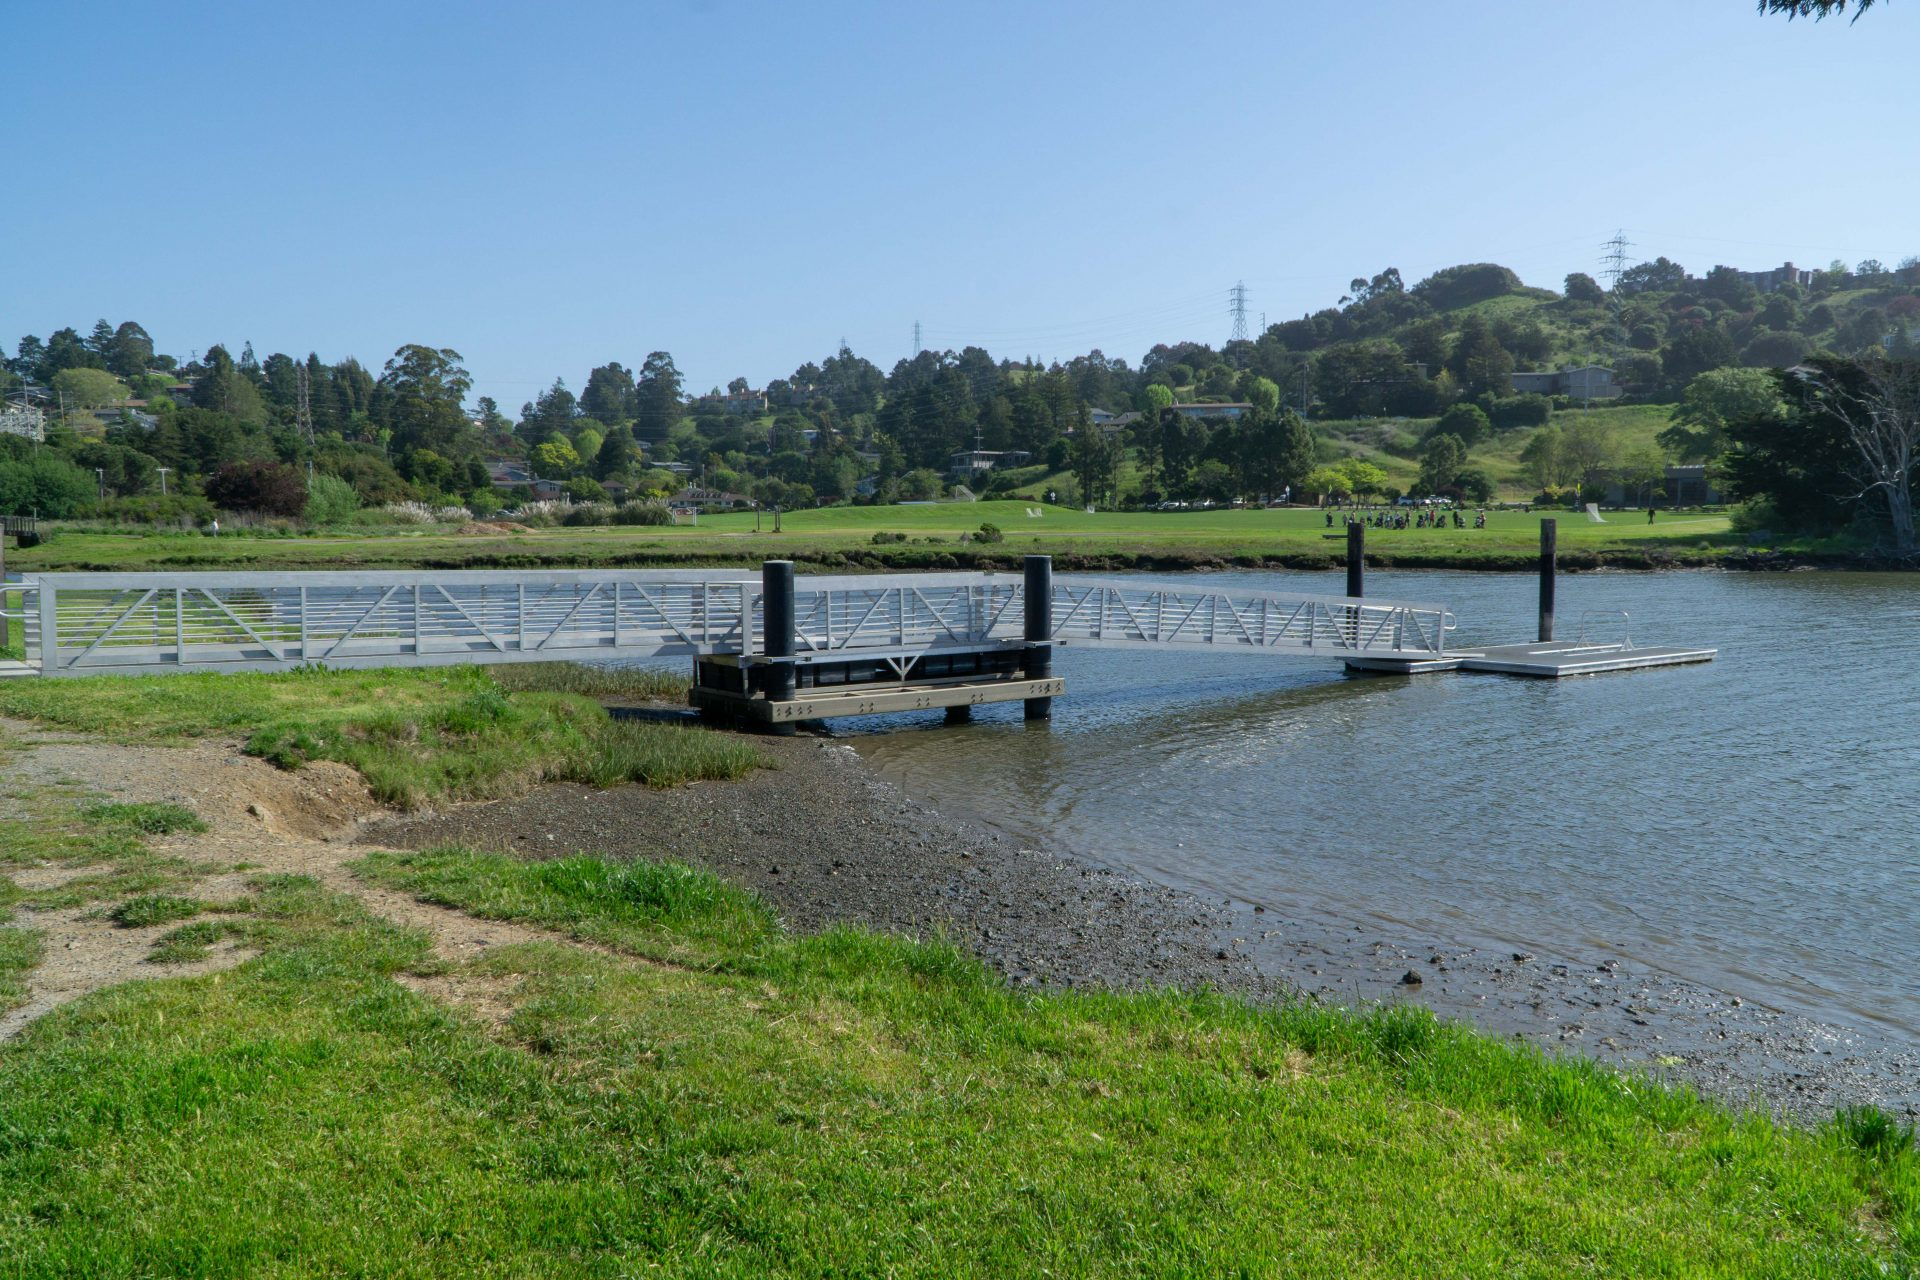 green lawn, muddy shore, ramp to pier